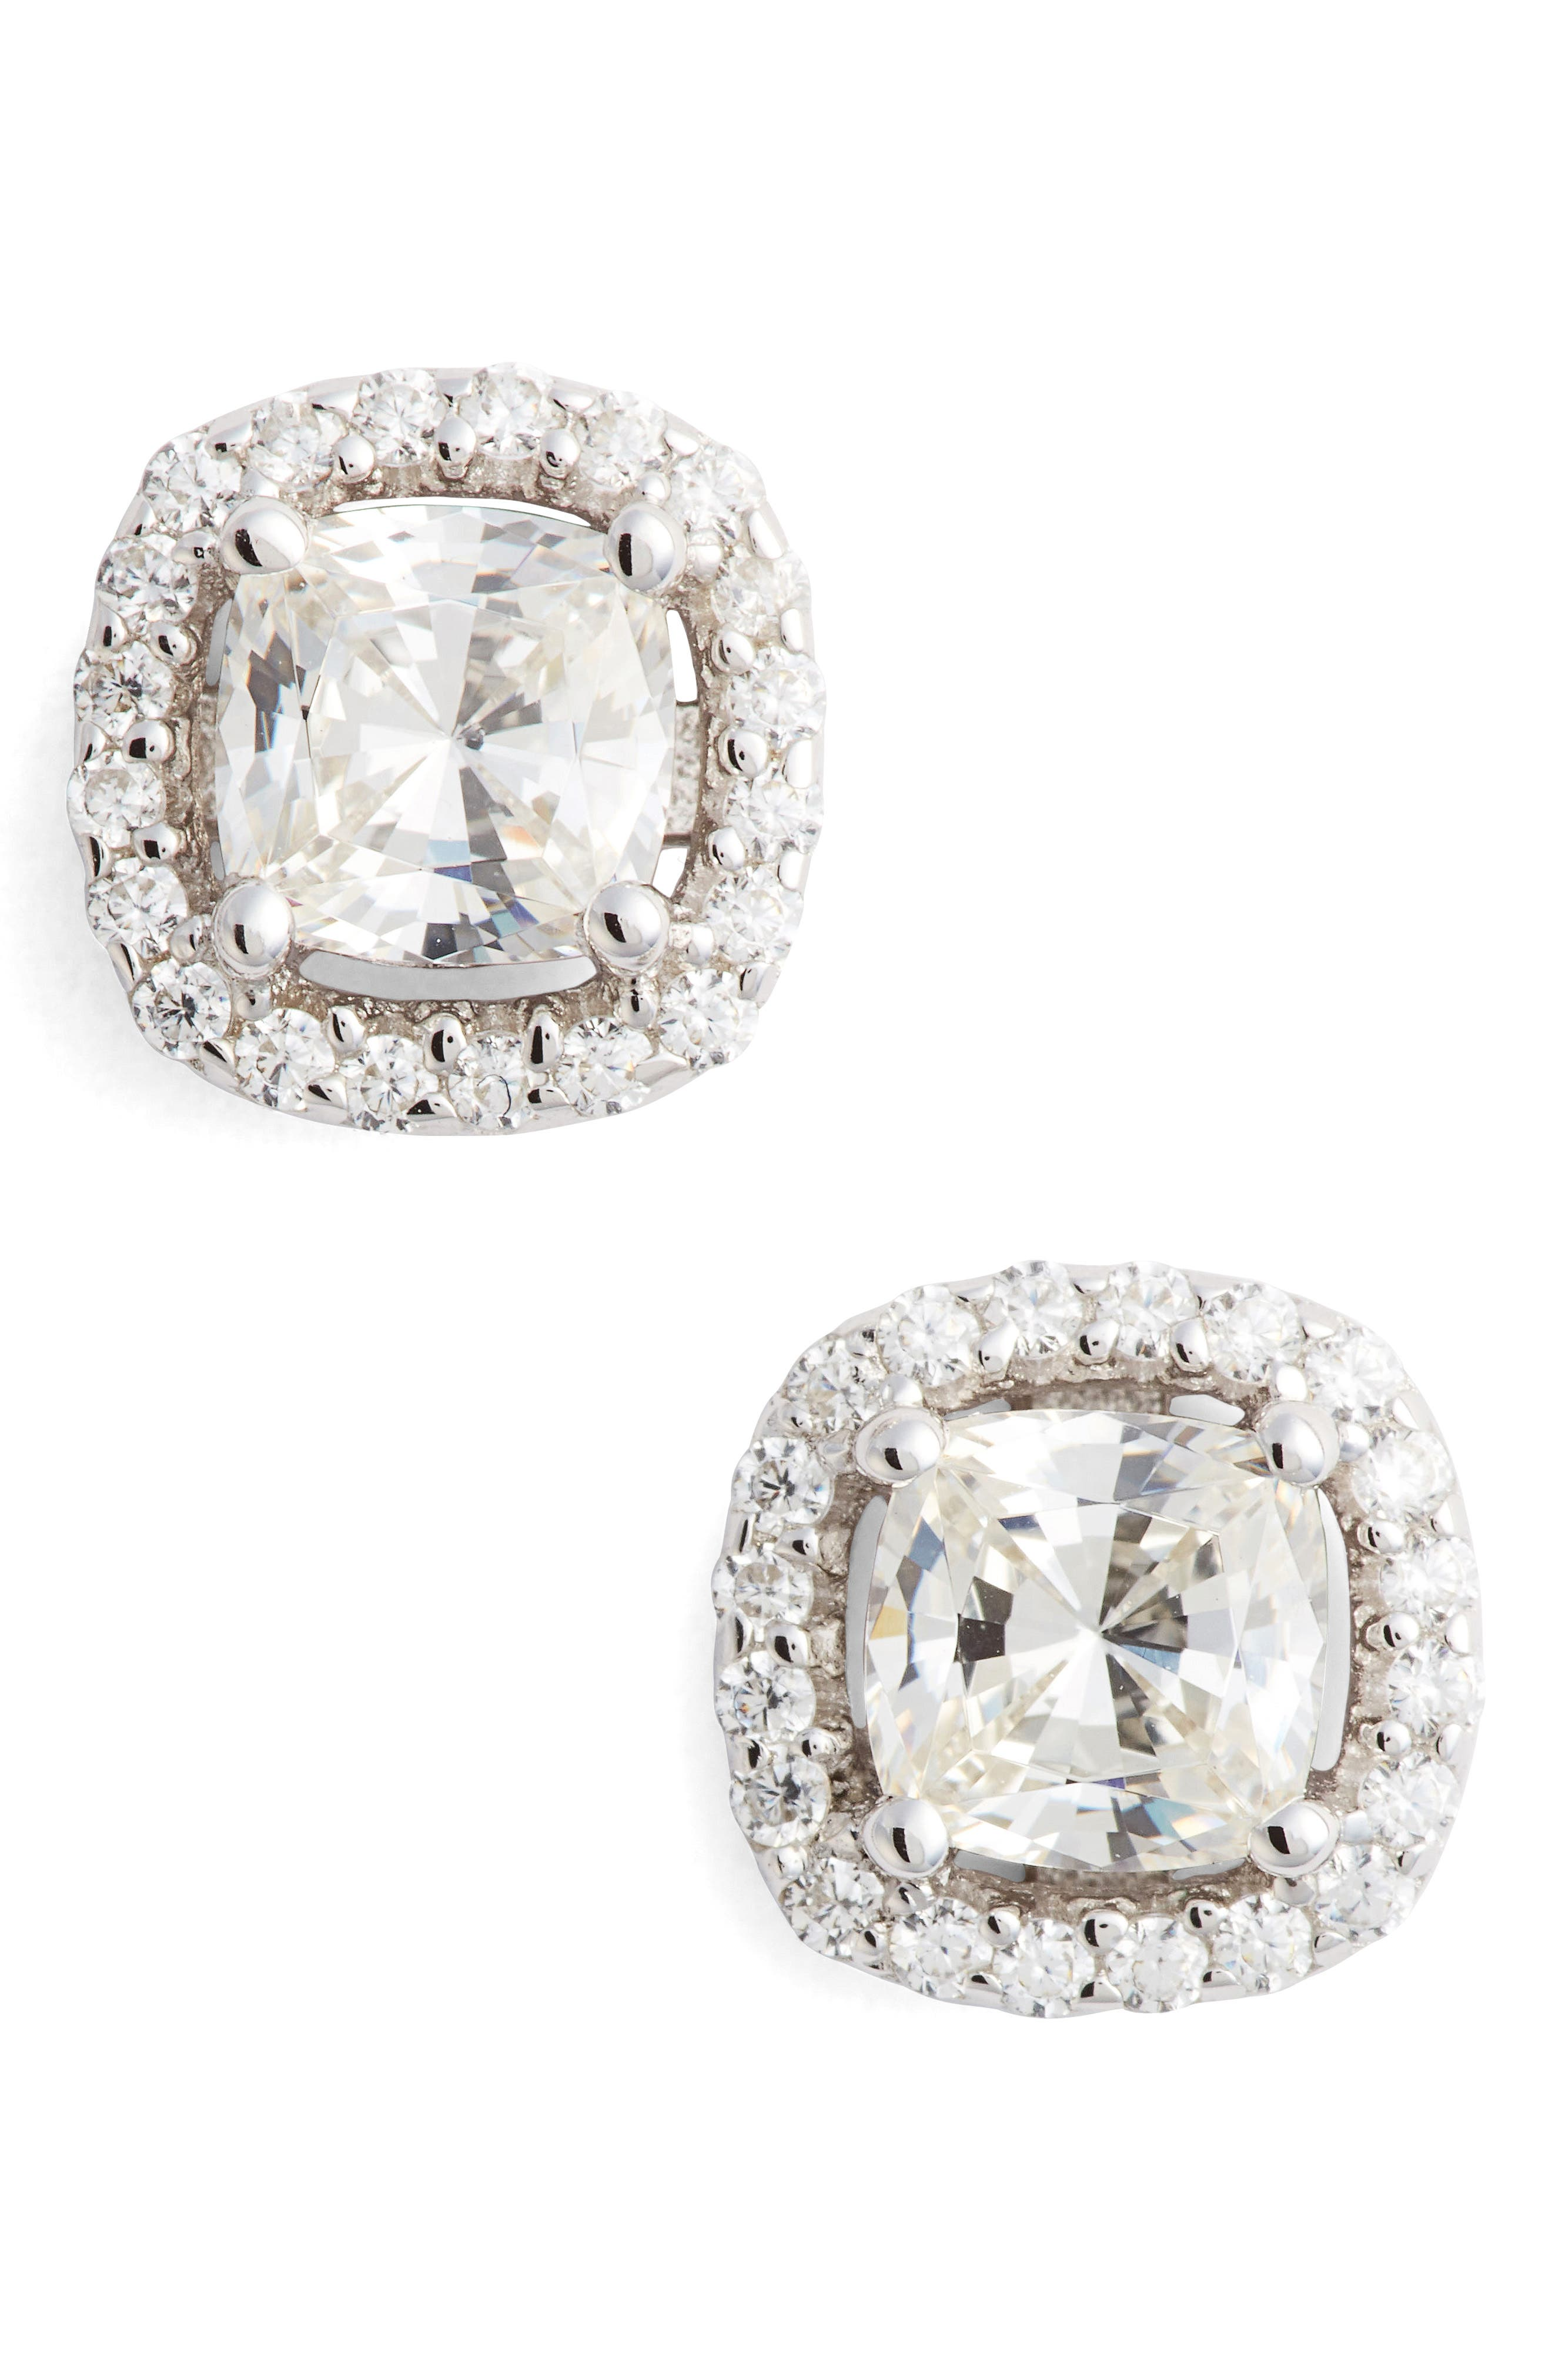 Cushion Cut Simulated Diamond Stud Earrings,                         Main,                         color, Silver/ Clear